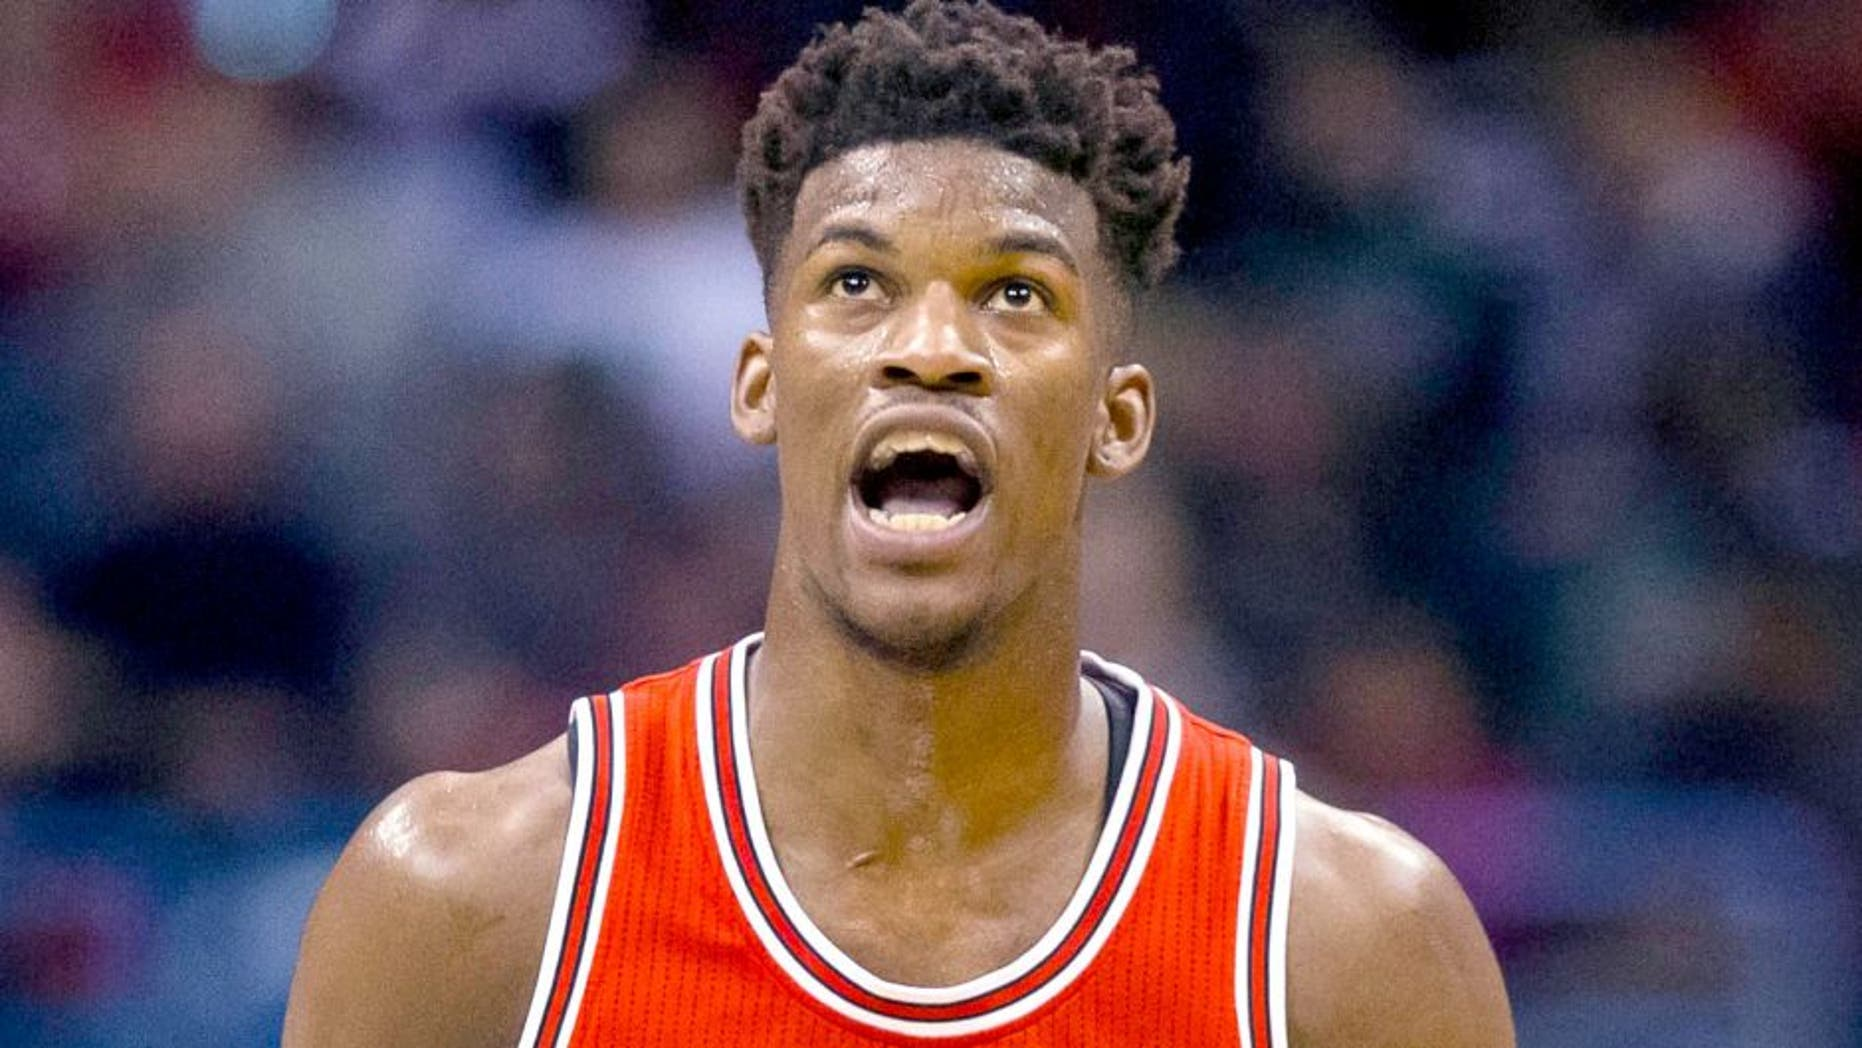 Apr 23, 2015; Milwaukee, WI, USA; Chicago Bulls guard Jimmy Butler (21) reacts after making a basket during the third quarter against the Milwaukee Bucks in game three of the first round of the NBA Playoffs at BMO Harris Bradley Center. Mandatory Credit: Jeff Hanisch-USA TODAY Sports